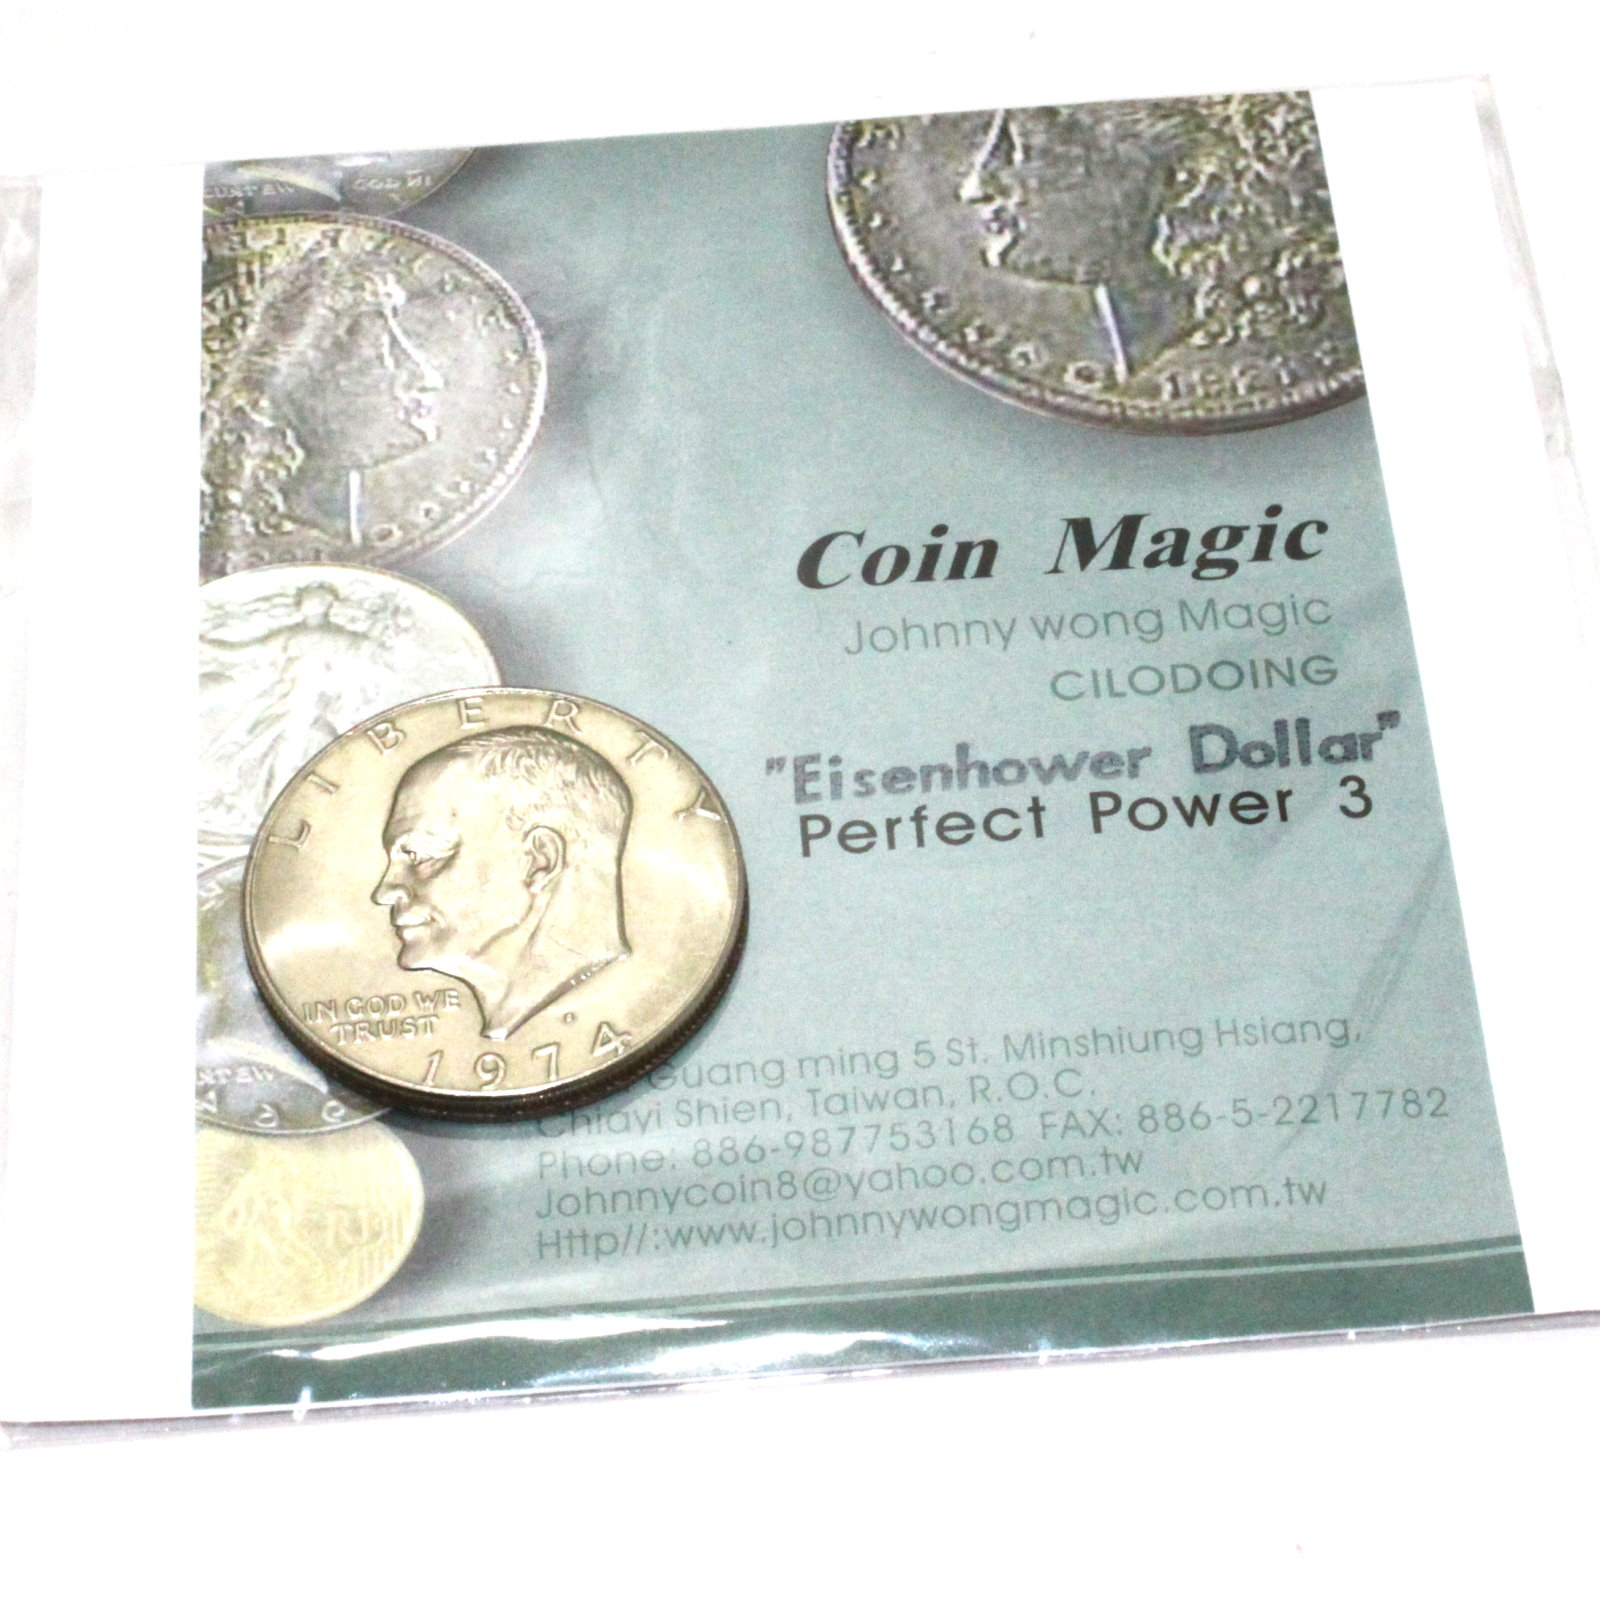 Perfect Power 3 (Eisenhower Dollar) by Johnny Wong